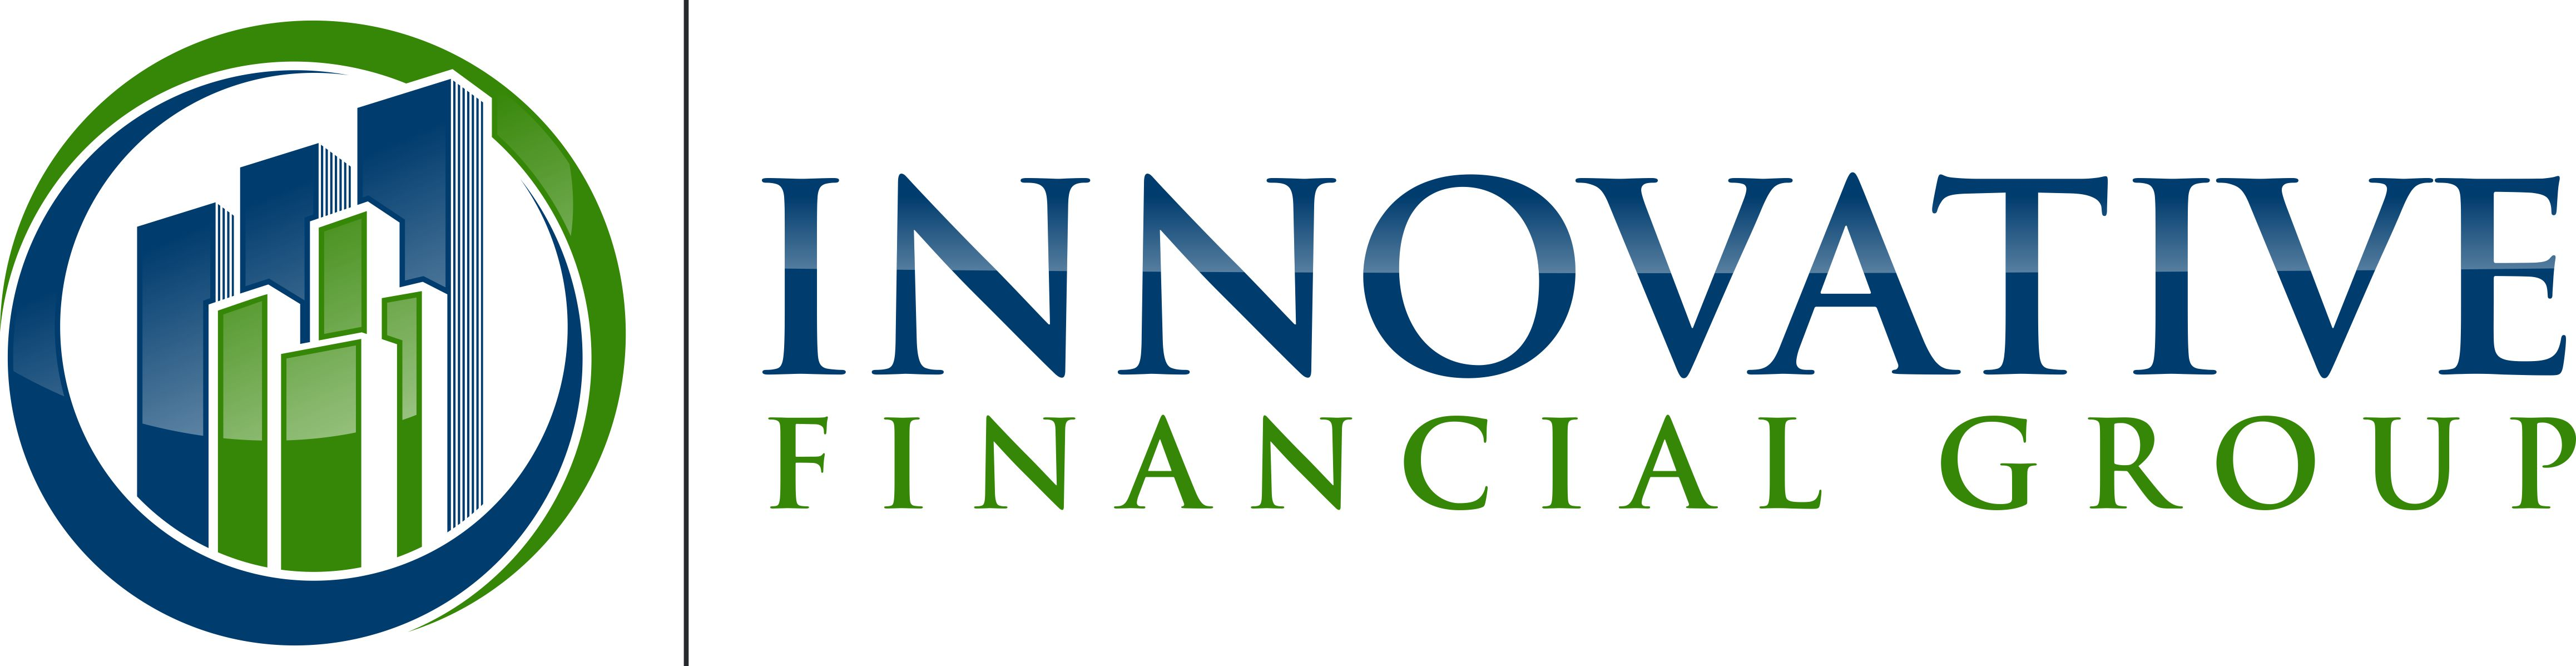 Innovative Financial Group